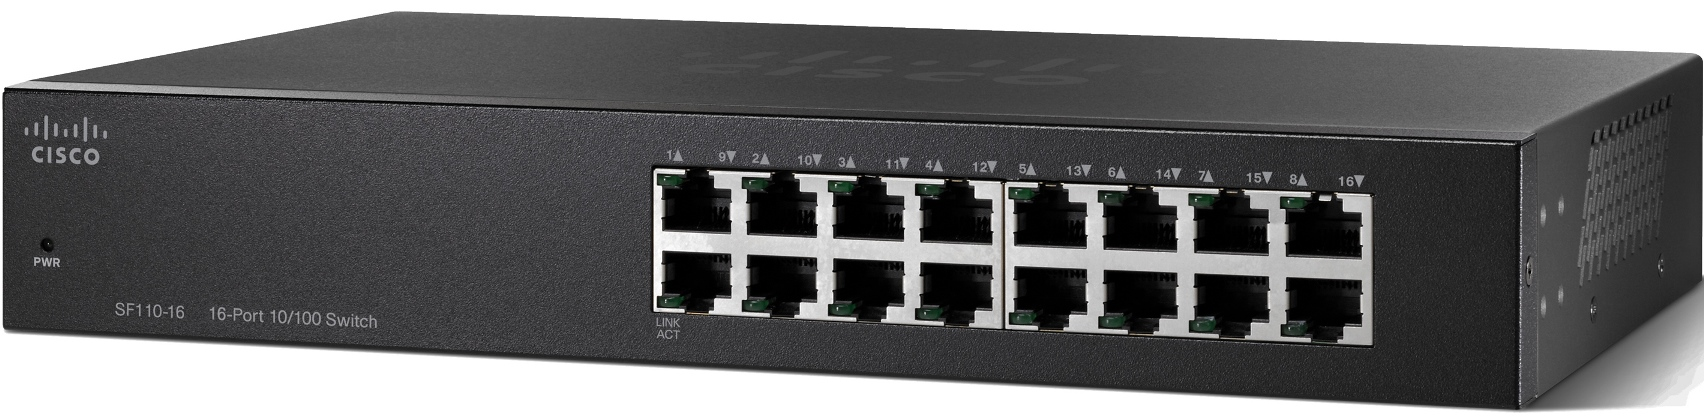 Cisco SF110-16-EU, 16x10/100 Desktop Switch